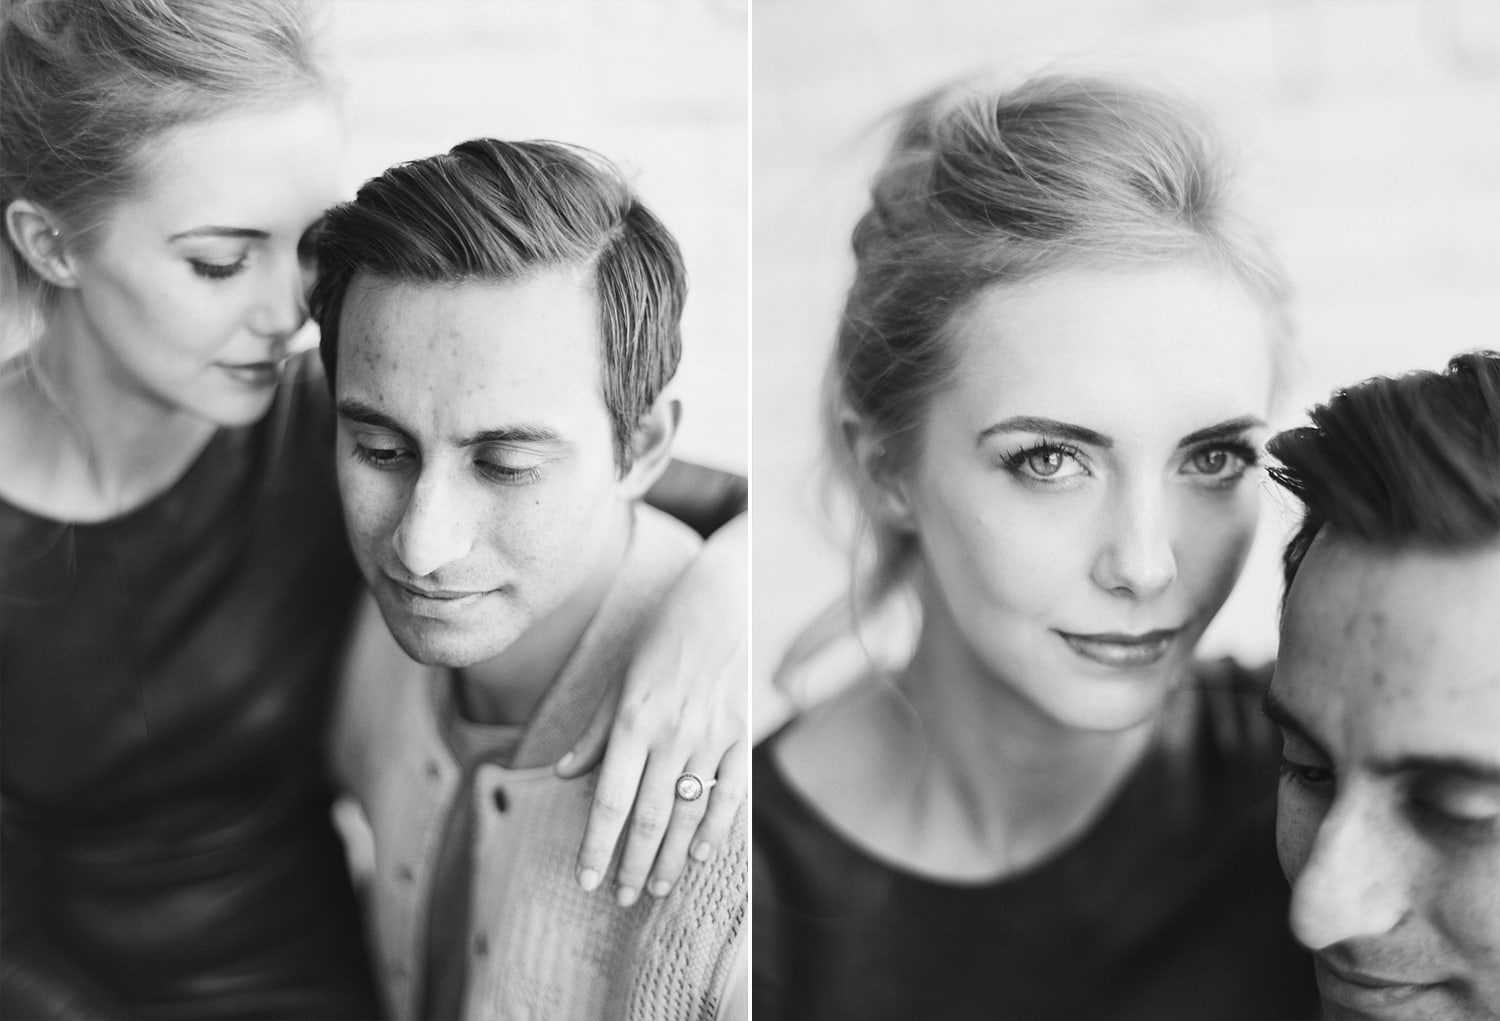 ONE_ELEVEN_EAST_MODERN_ENGAGEMENT_SHOOT_AUSTIN_TX_BY_MATTHEW_MOORE_PHOTOGRAPHY_00224.jpg